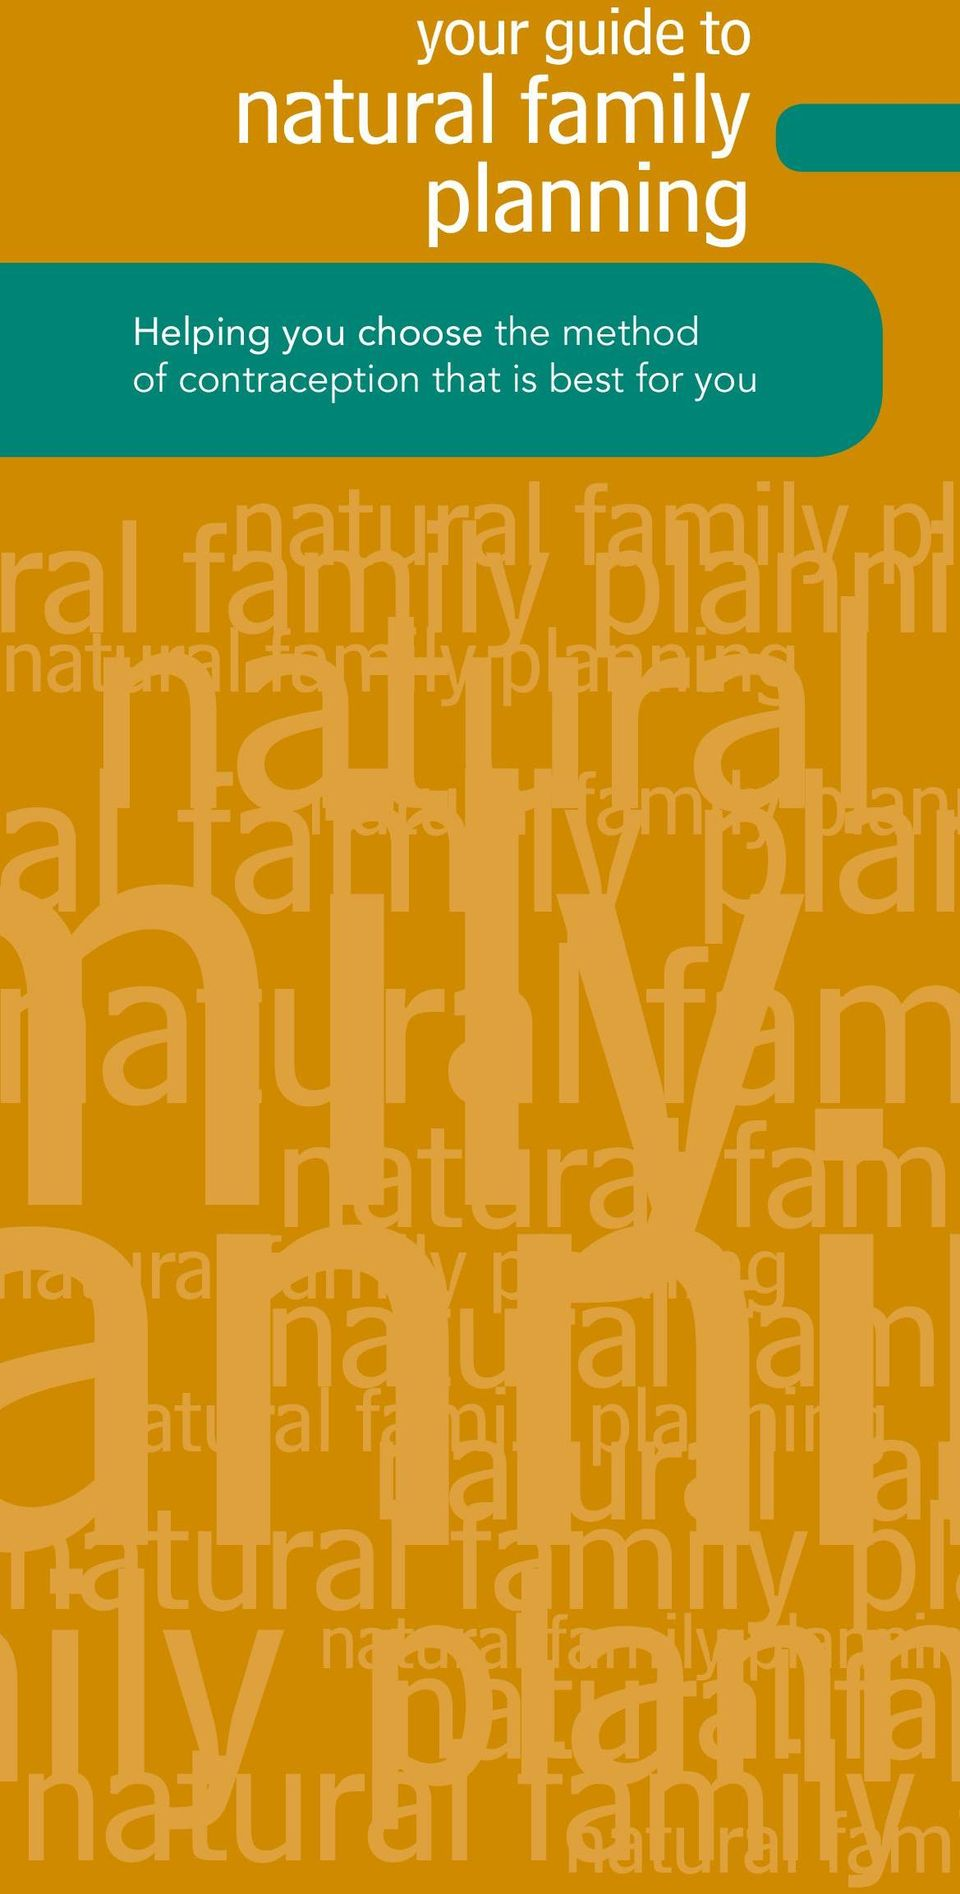 atural fam natural fami atural family planning l family plan natural fami natural family natural